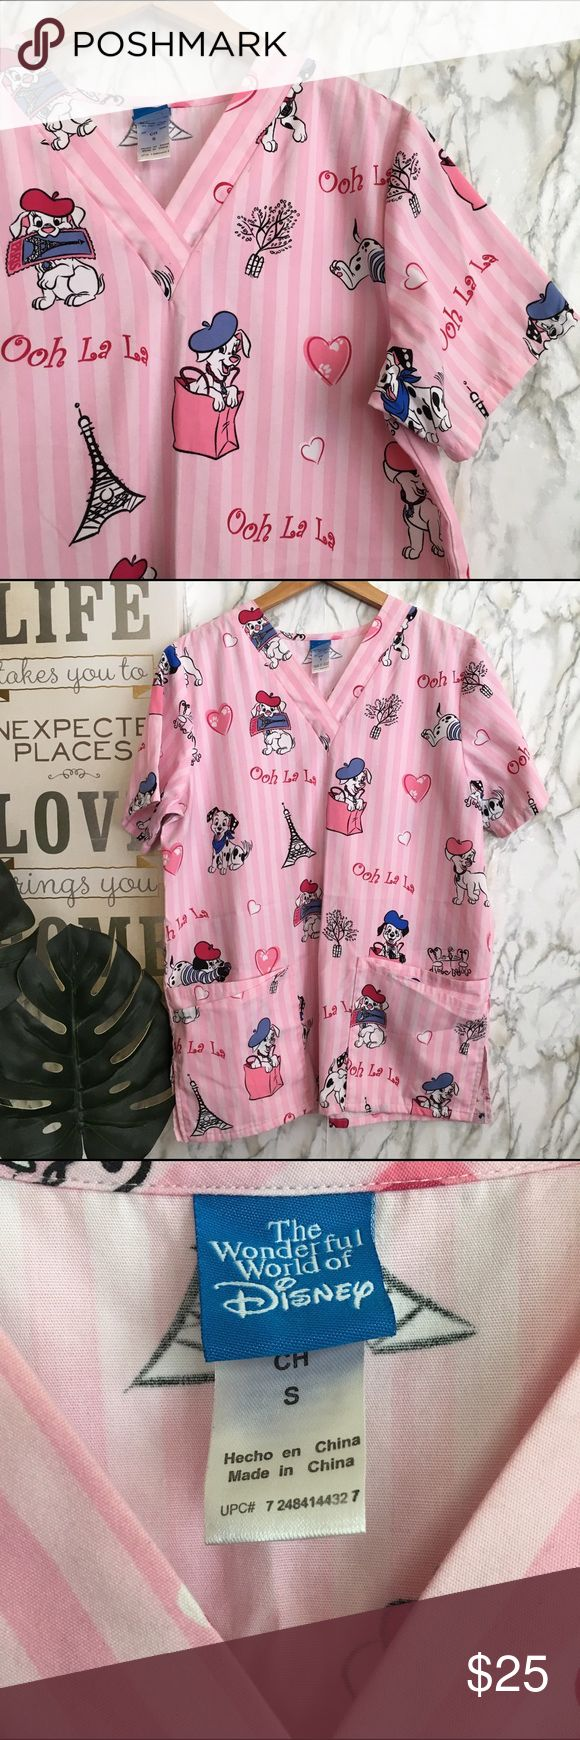 "Nurse Scrup top Disney 101Dalmations,Paris France Super cute DISNEY scrub Top 101 Dalmations Nurse scrub Top. Look like new, 2 pockets, short sleeve, size S. No stains, No Holes, No smoking Home 🏡 bought originally from Disney store, looks like new. Dimensions: arm pit to arm pit 20"" & top to bottom 28""🎀shipped same day if you buy it before 3pm 🐝🌸🌼🌸 Disney Tops Tees - Short Sleeve"